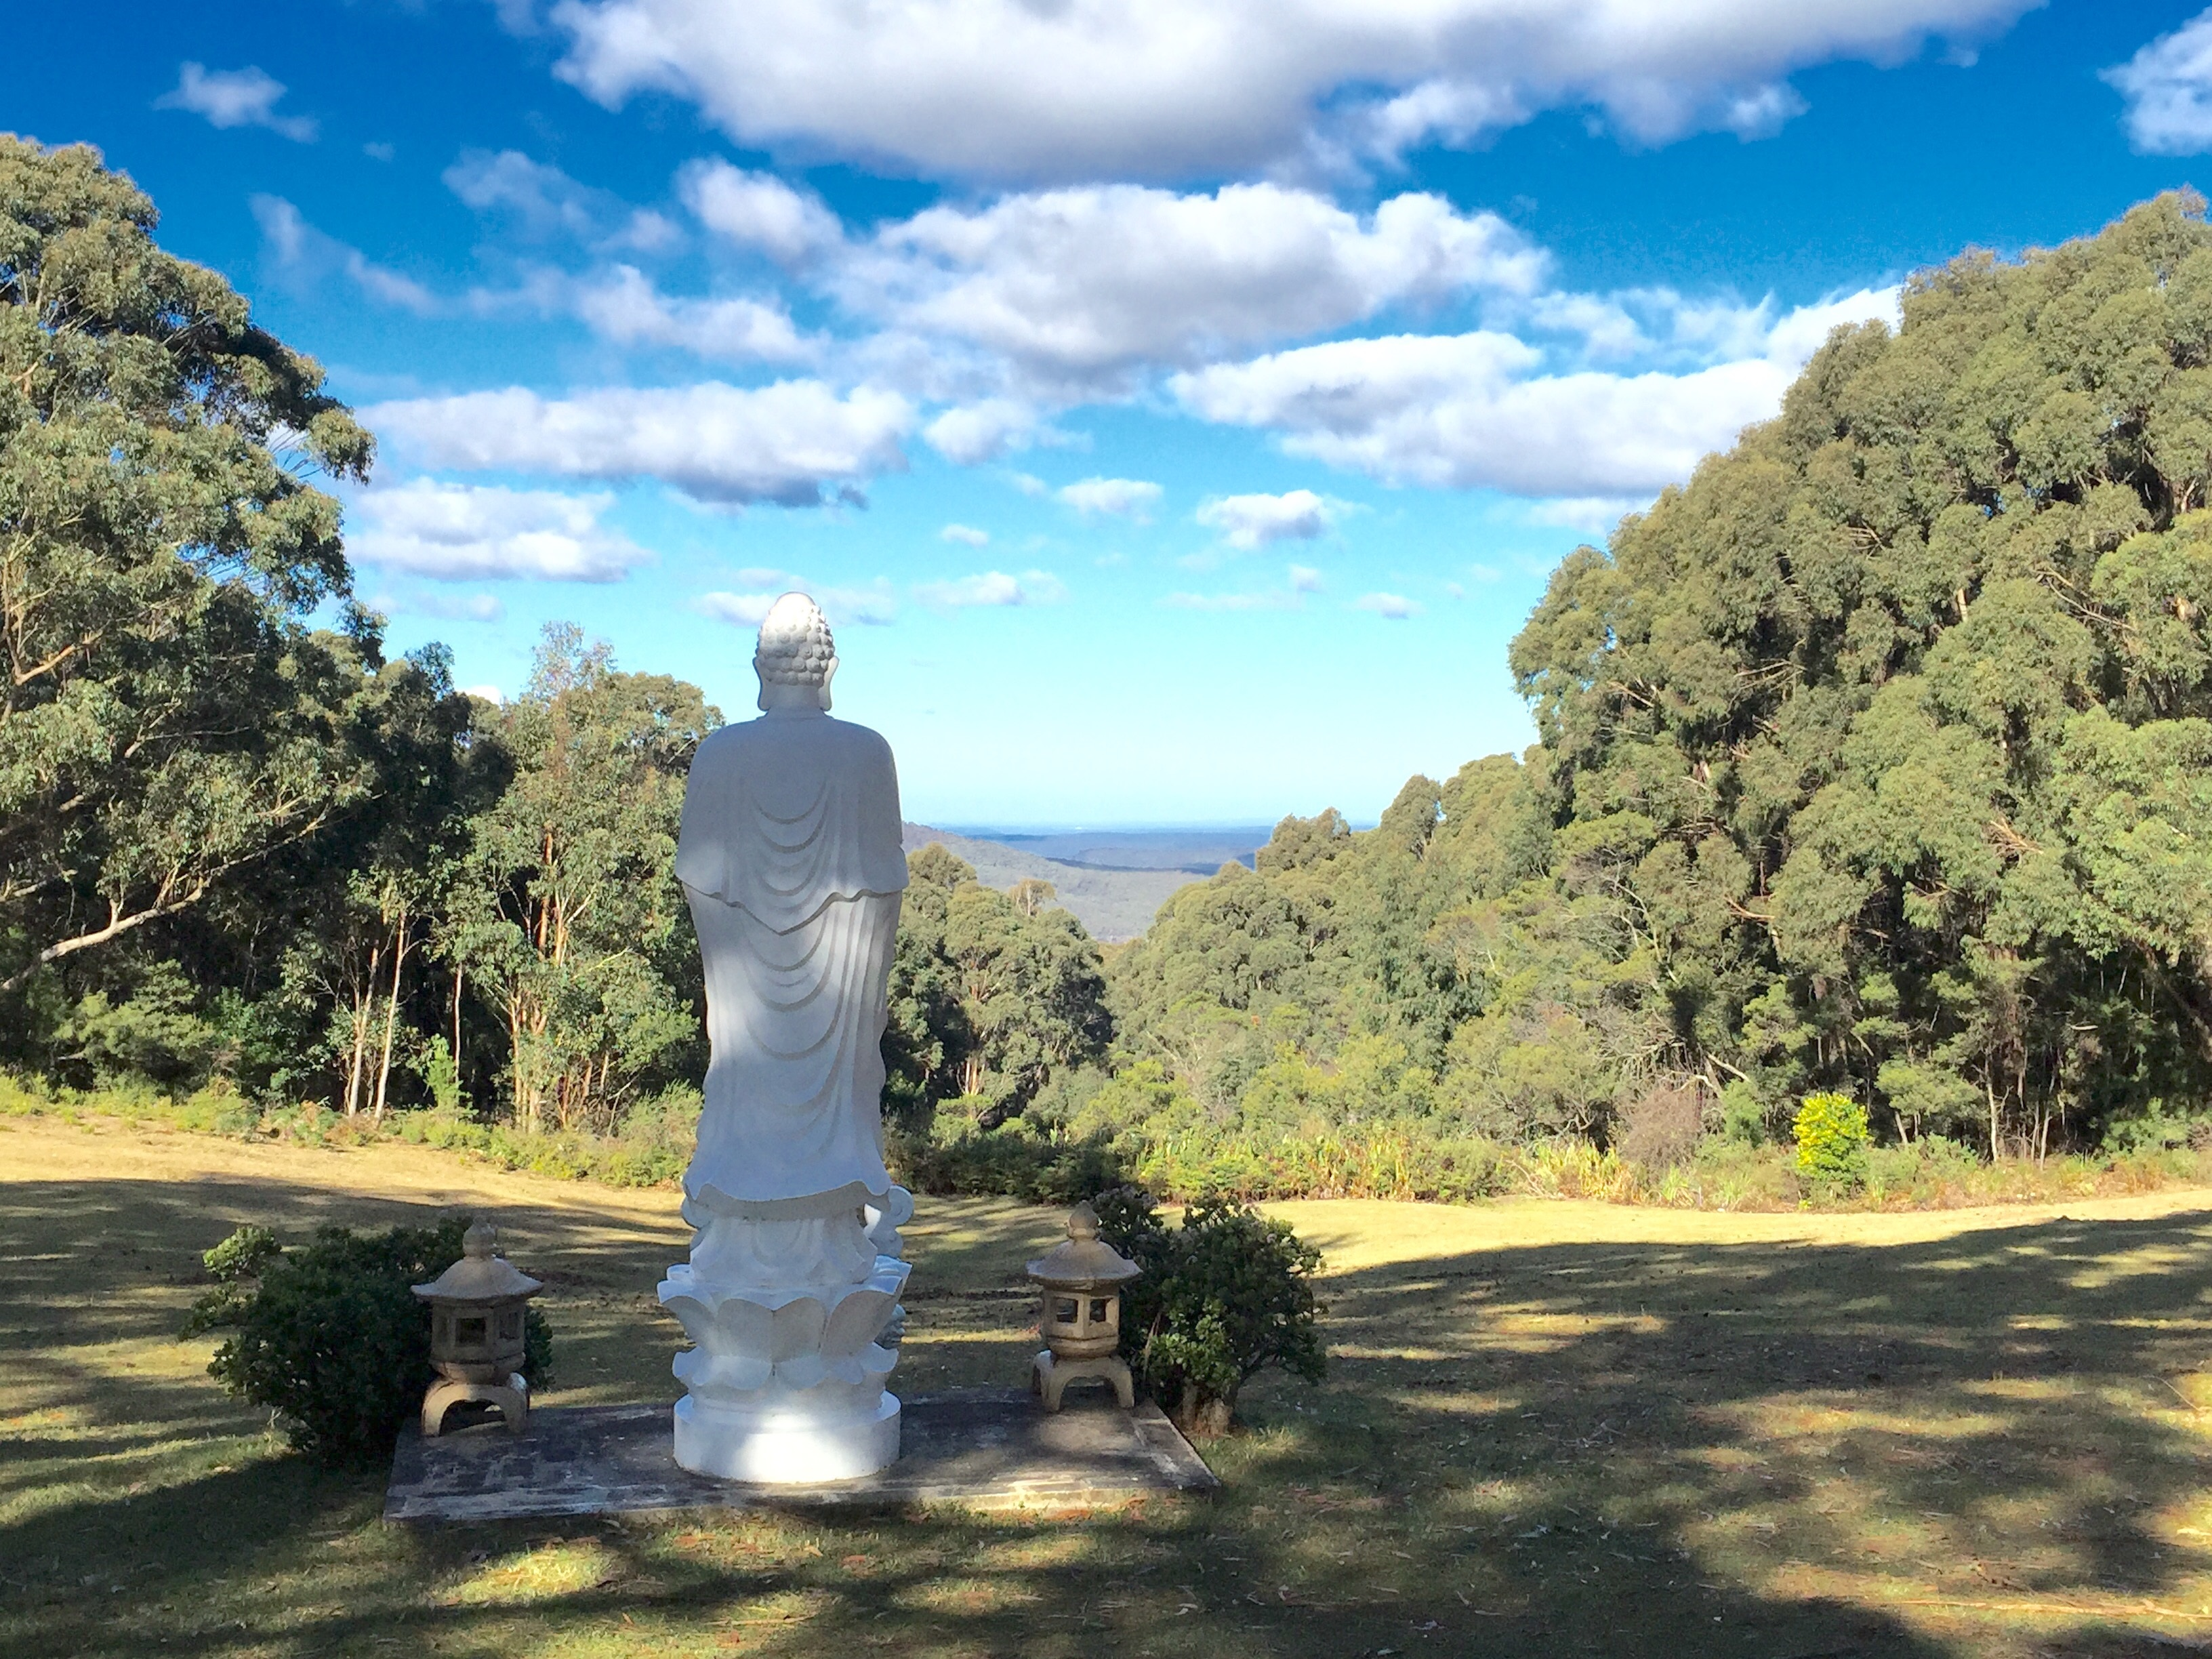 Sunnatarum meditation retreat